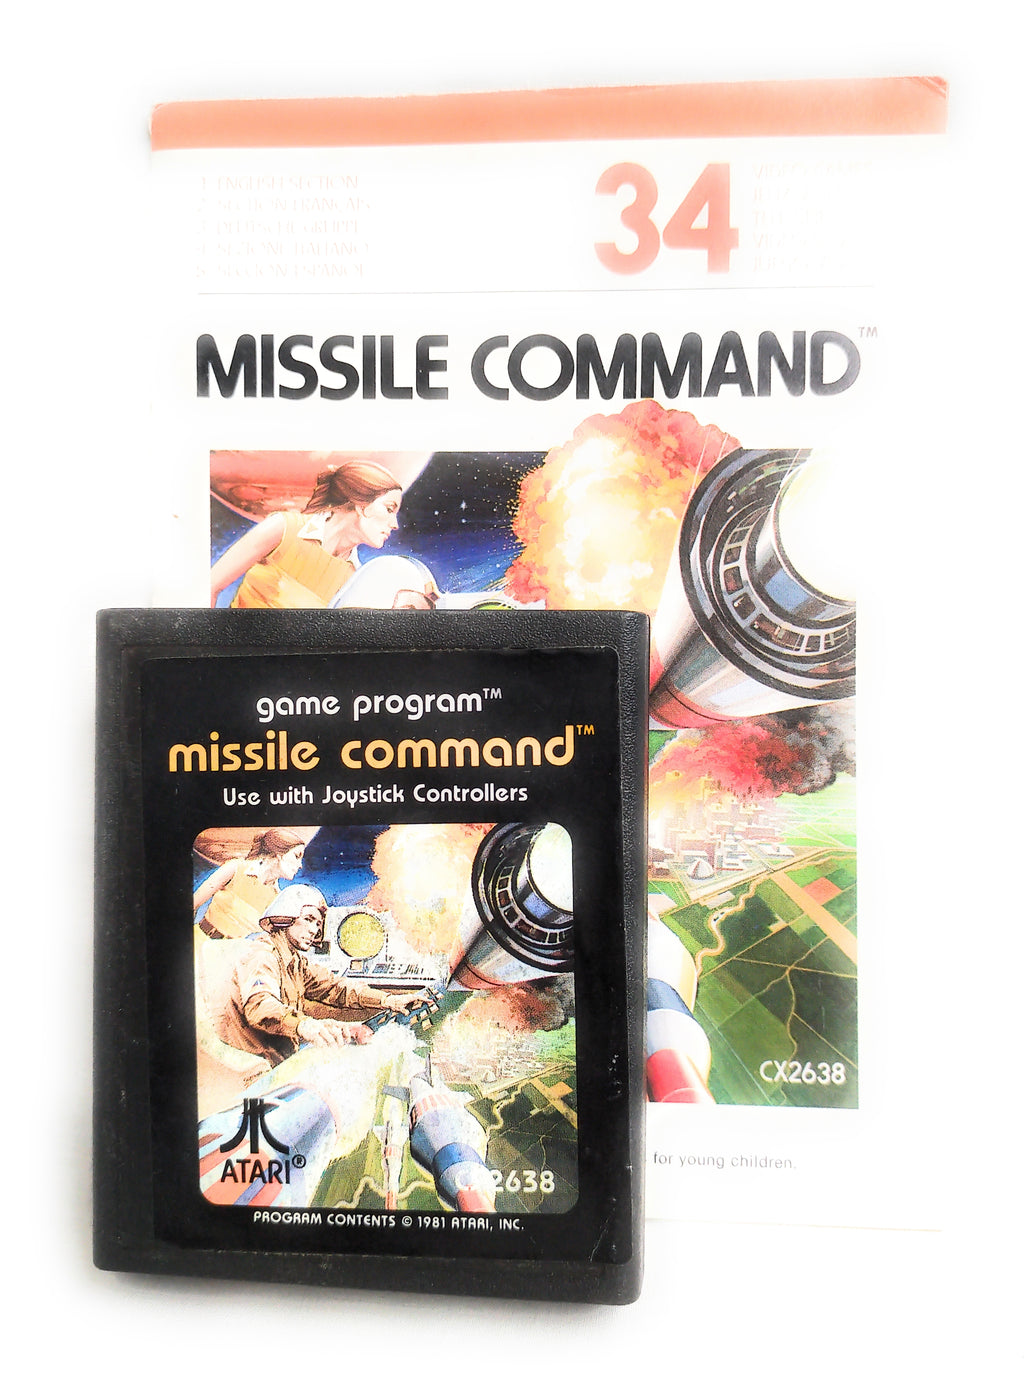 Missile Command (Atari 2600) CX2638 with Manual